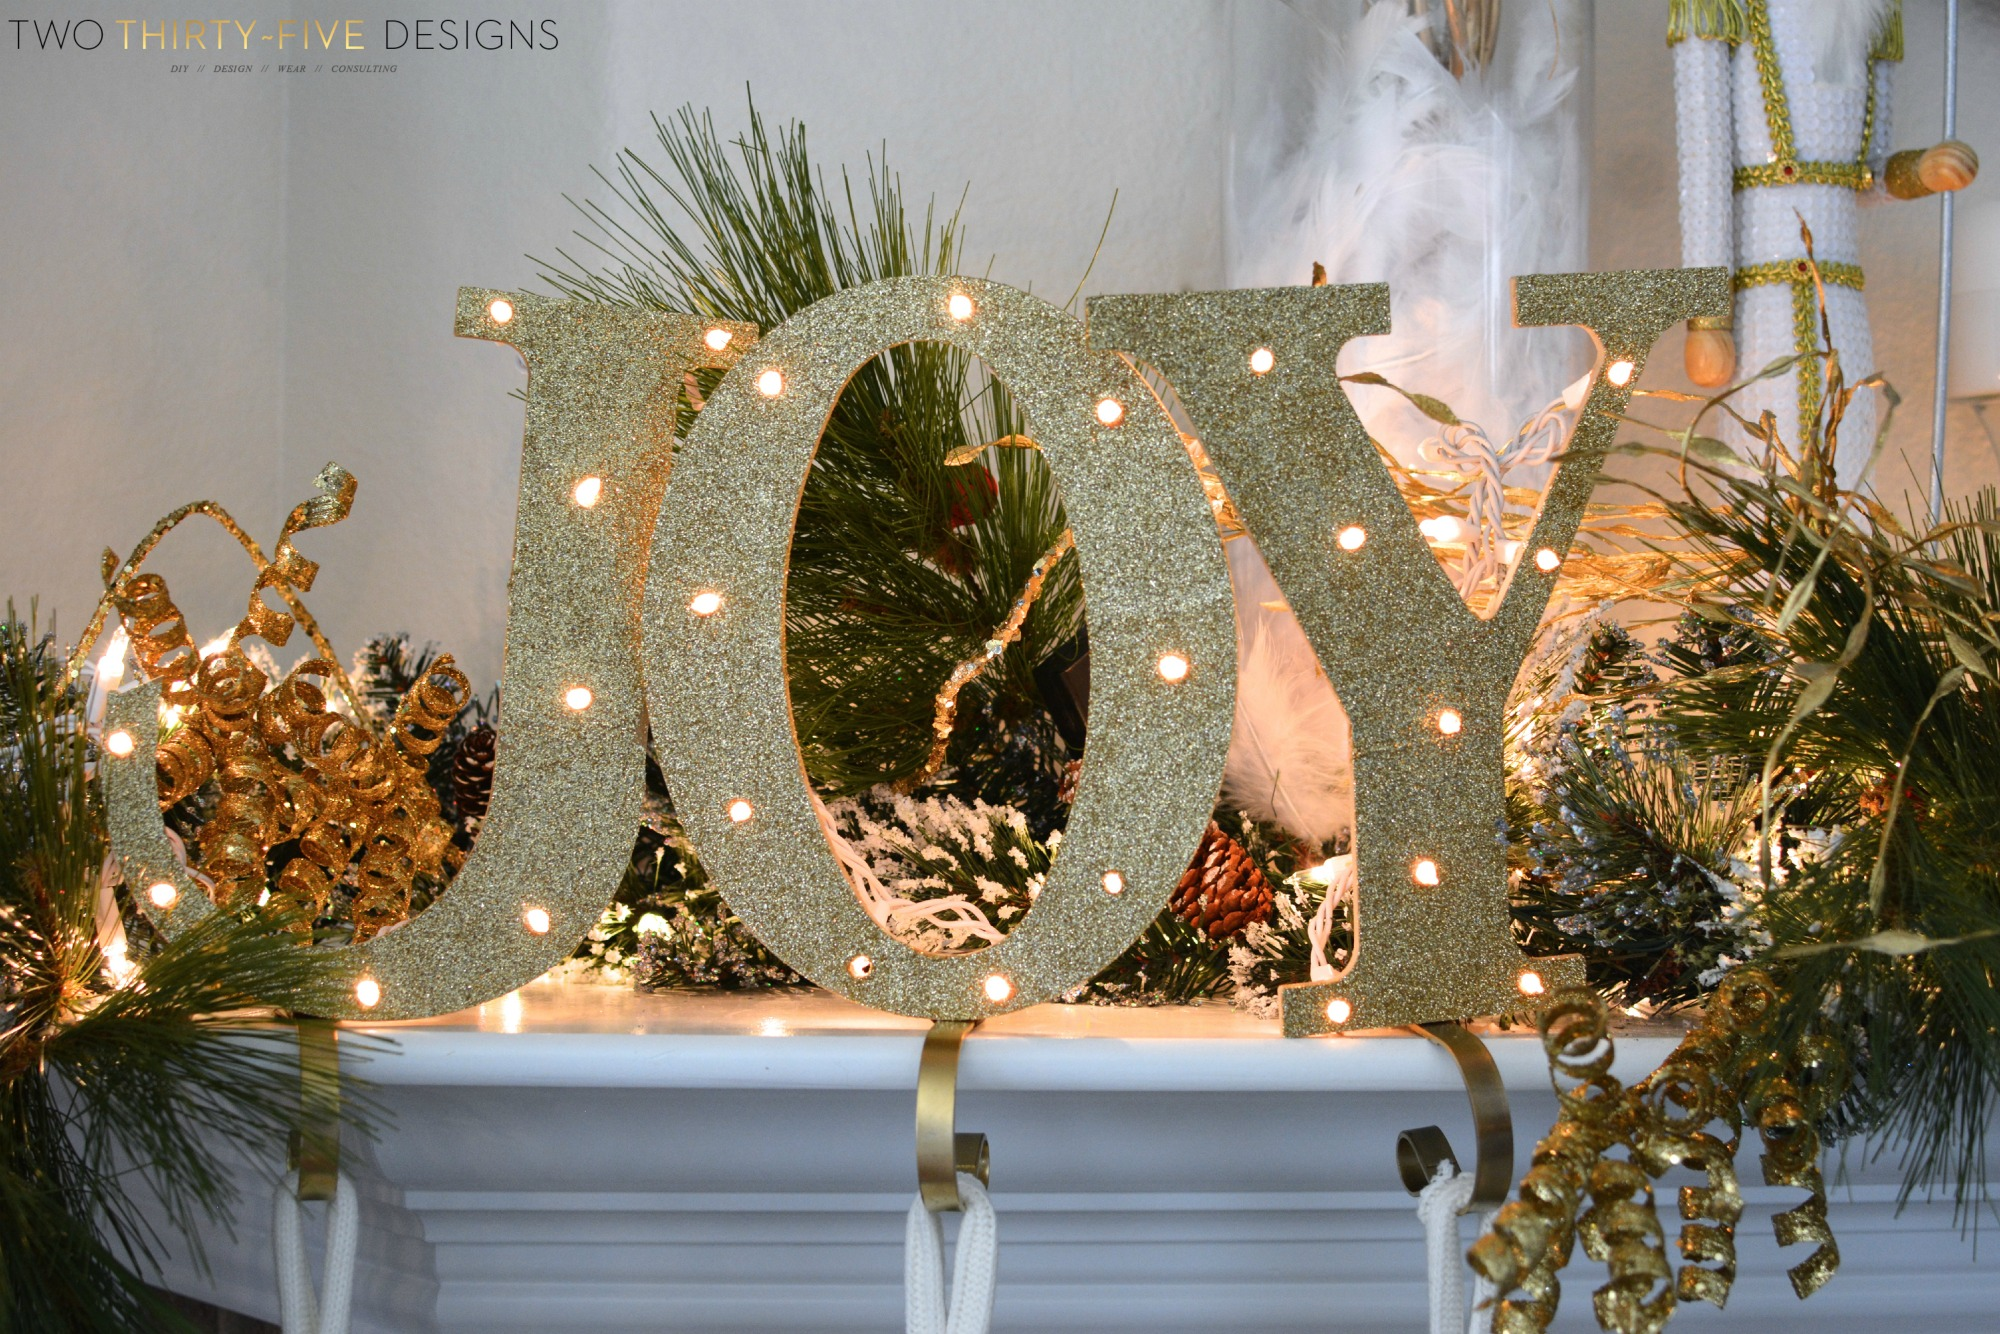 diy joy stocking holders by two thirty five designs